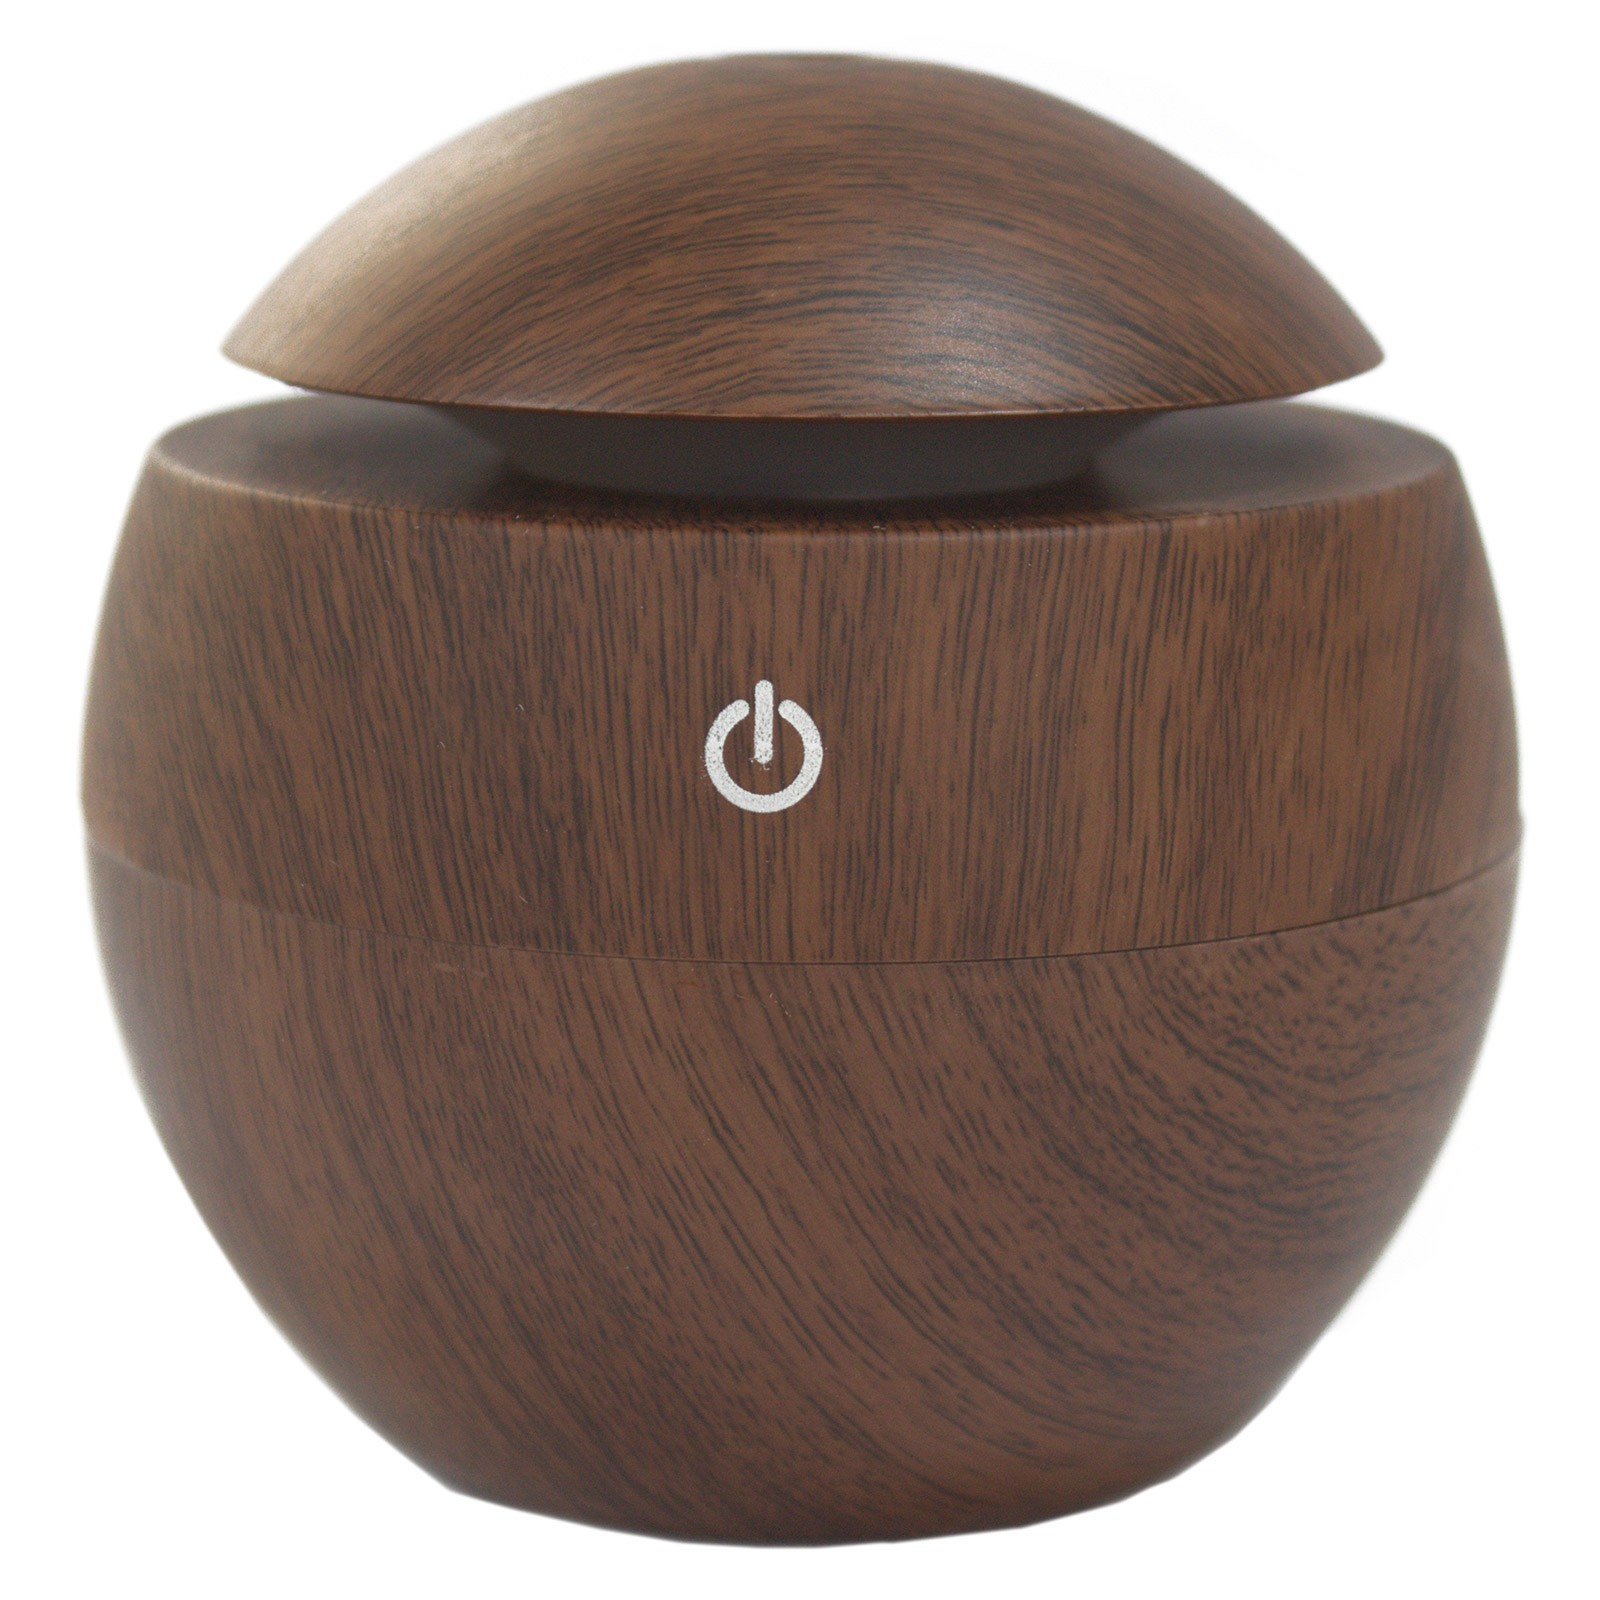 Ultrasonic aroma humidifier in Rosewood